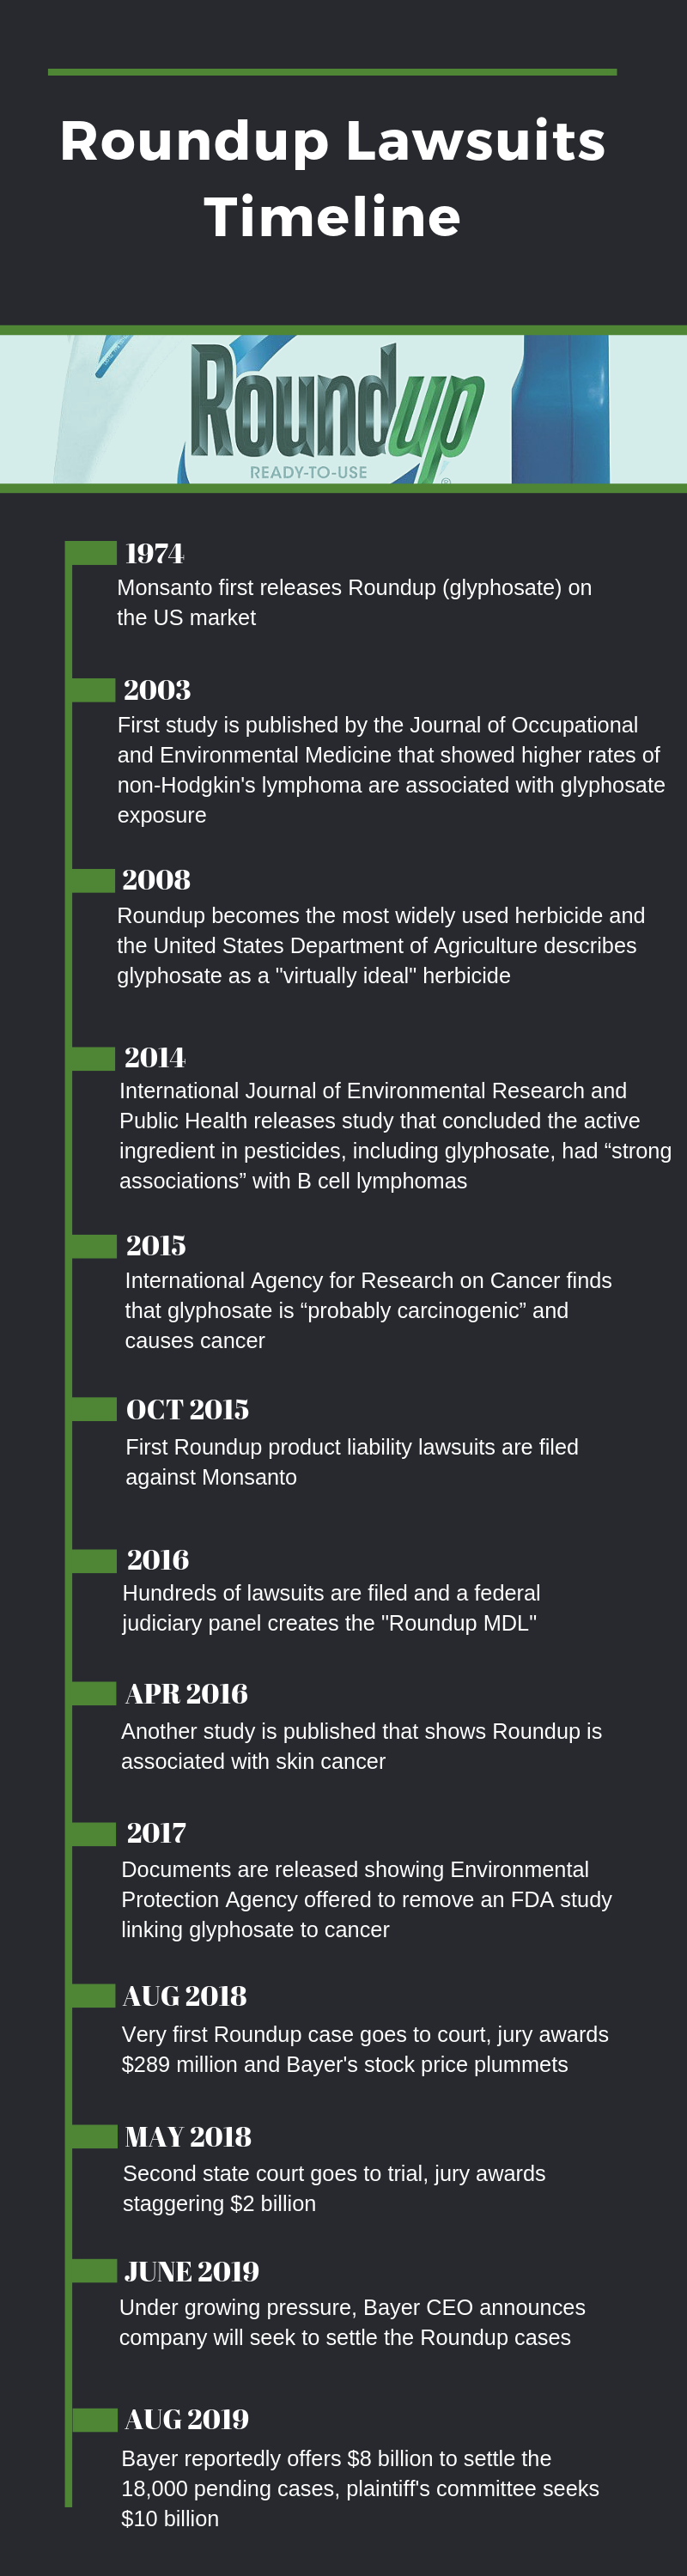 roundup cancer lawsuits